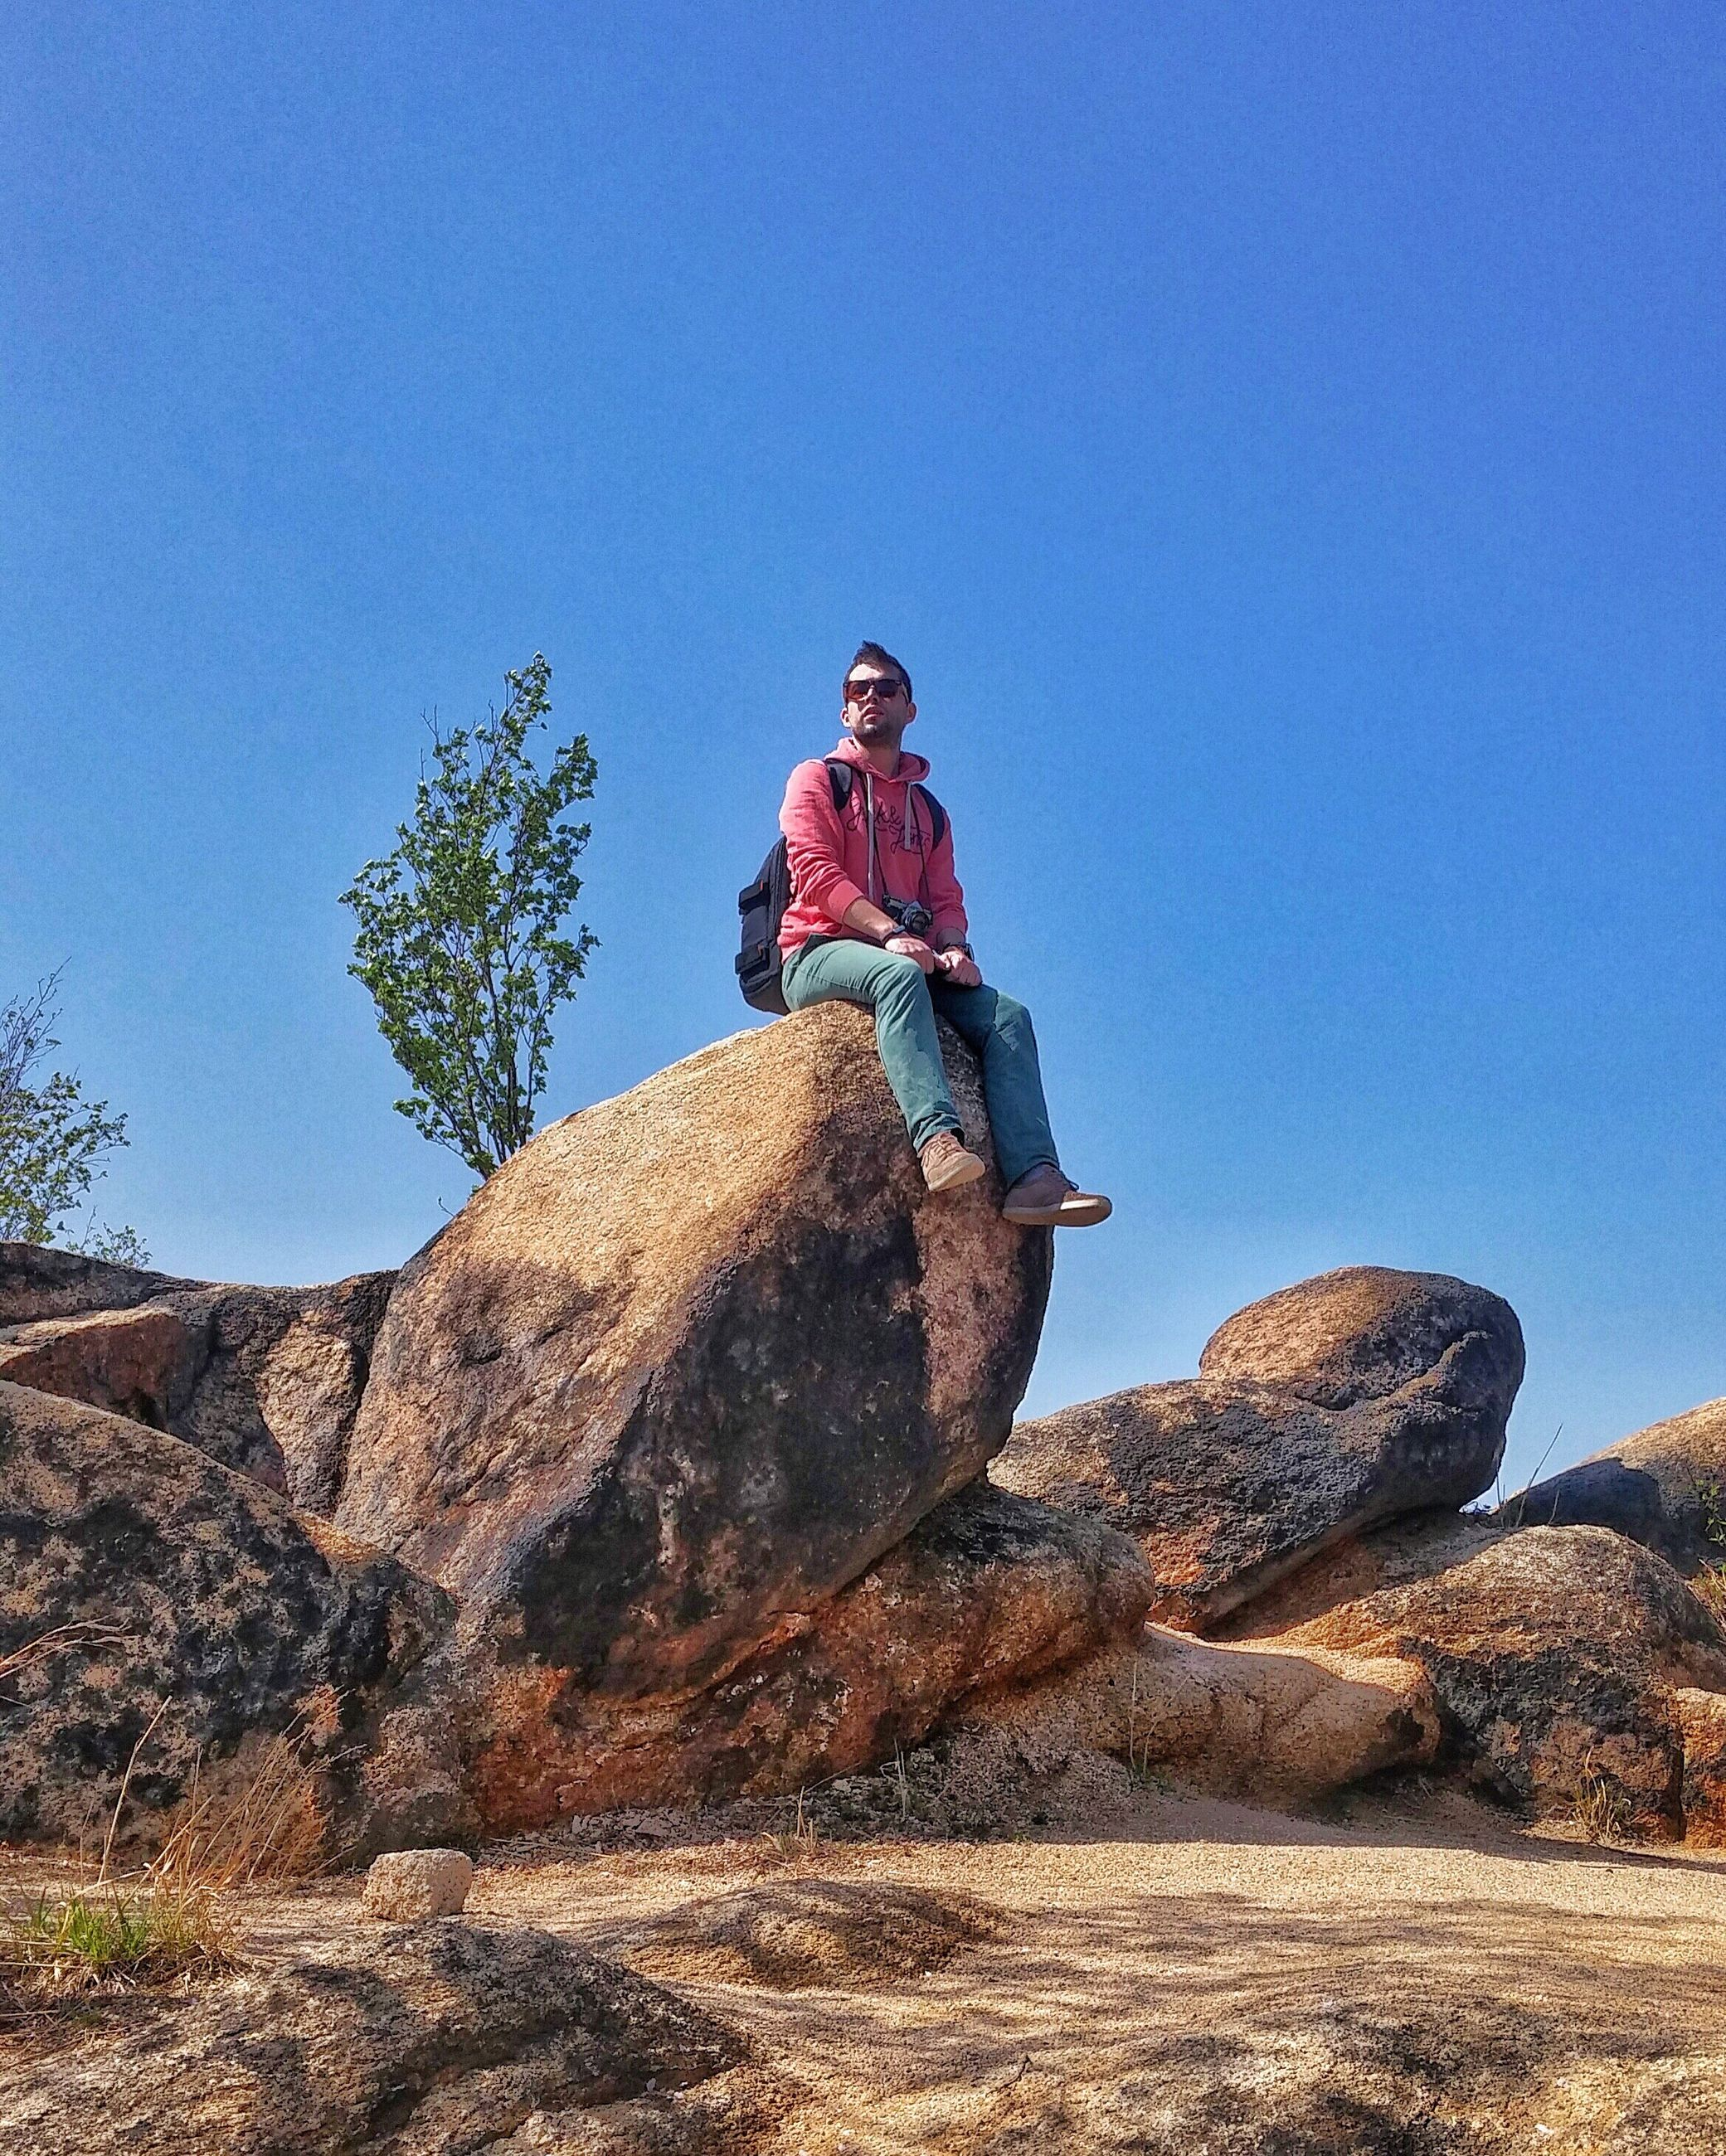 clear sky, leisure activity, blue, lifestyles, low angle view, full length, rock - object, copy space, men, adventure, nature, young adult, tranquility, rock formation, sky, sunlight, tree, young men